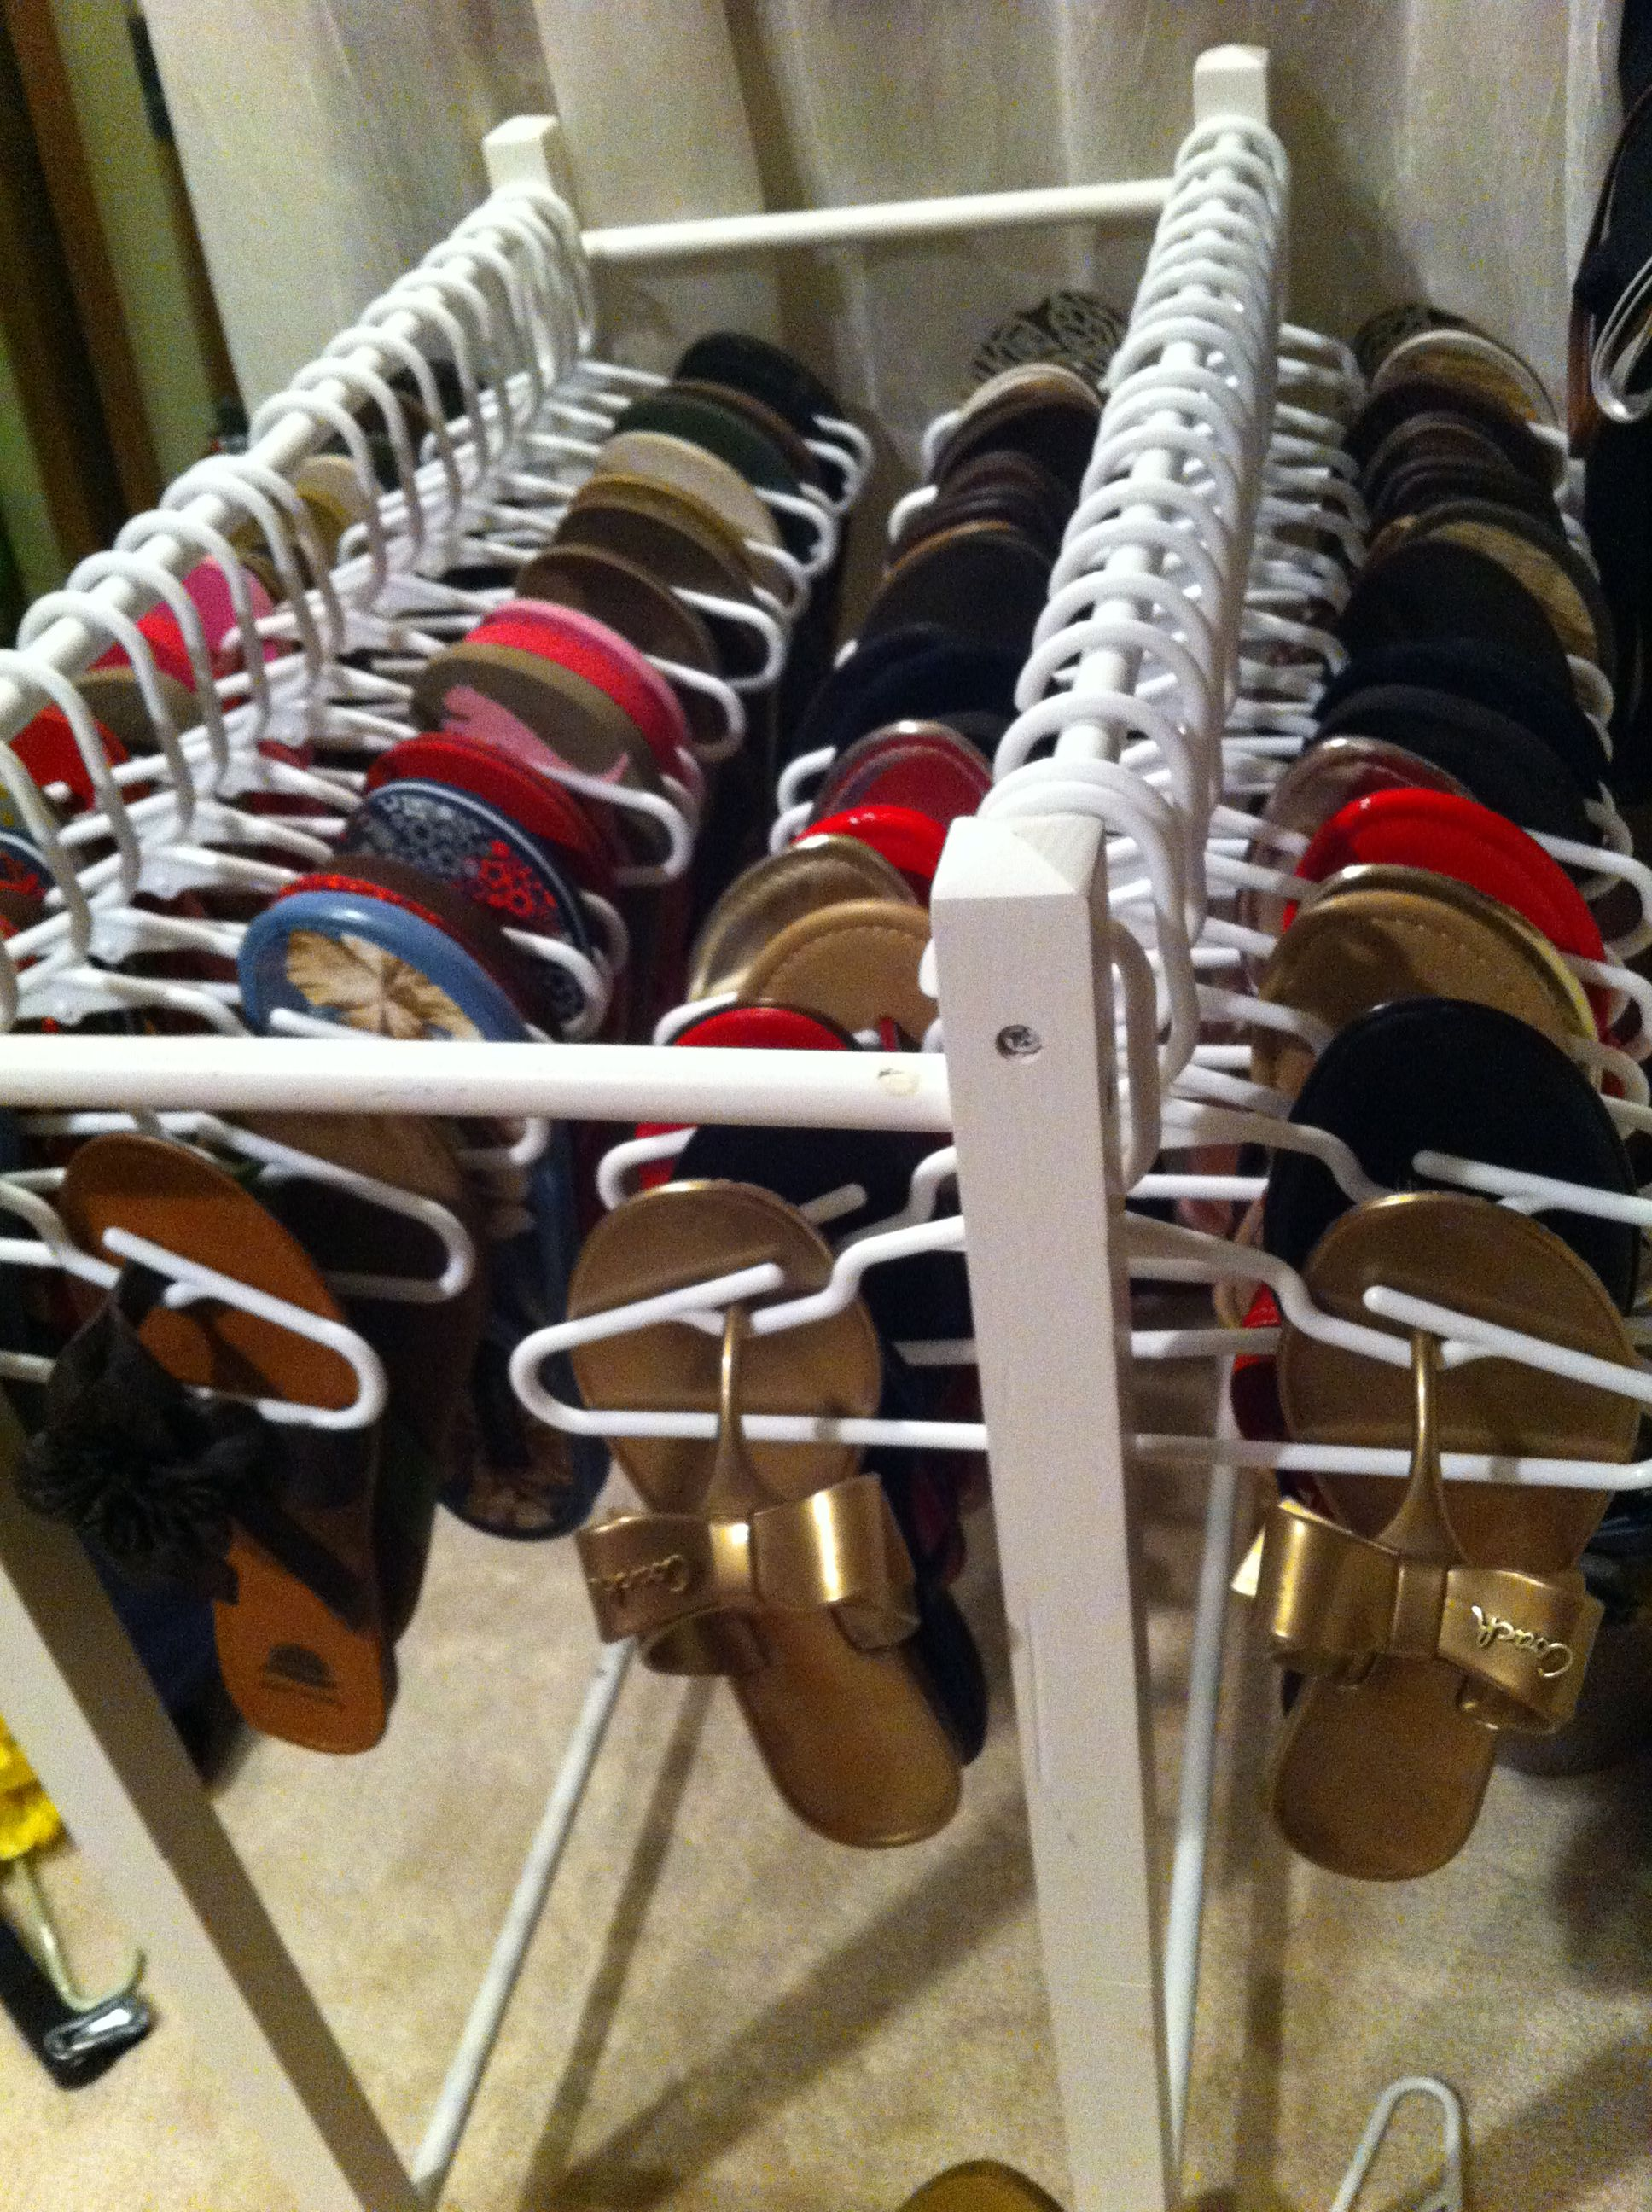 Flip Flop Easy Access I Don T Like Wire Hangers So The Idea Of Bending 60 Coat Hangers Was Too Closet Organization Diy Toddler Closet Organization Diy Storage